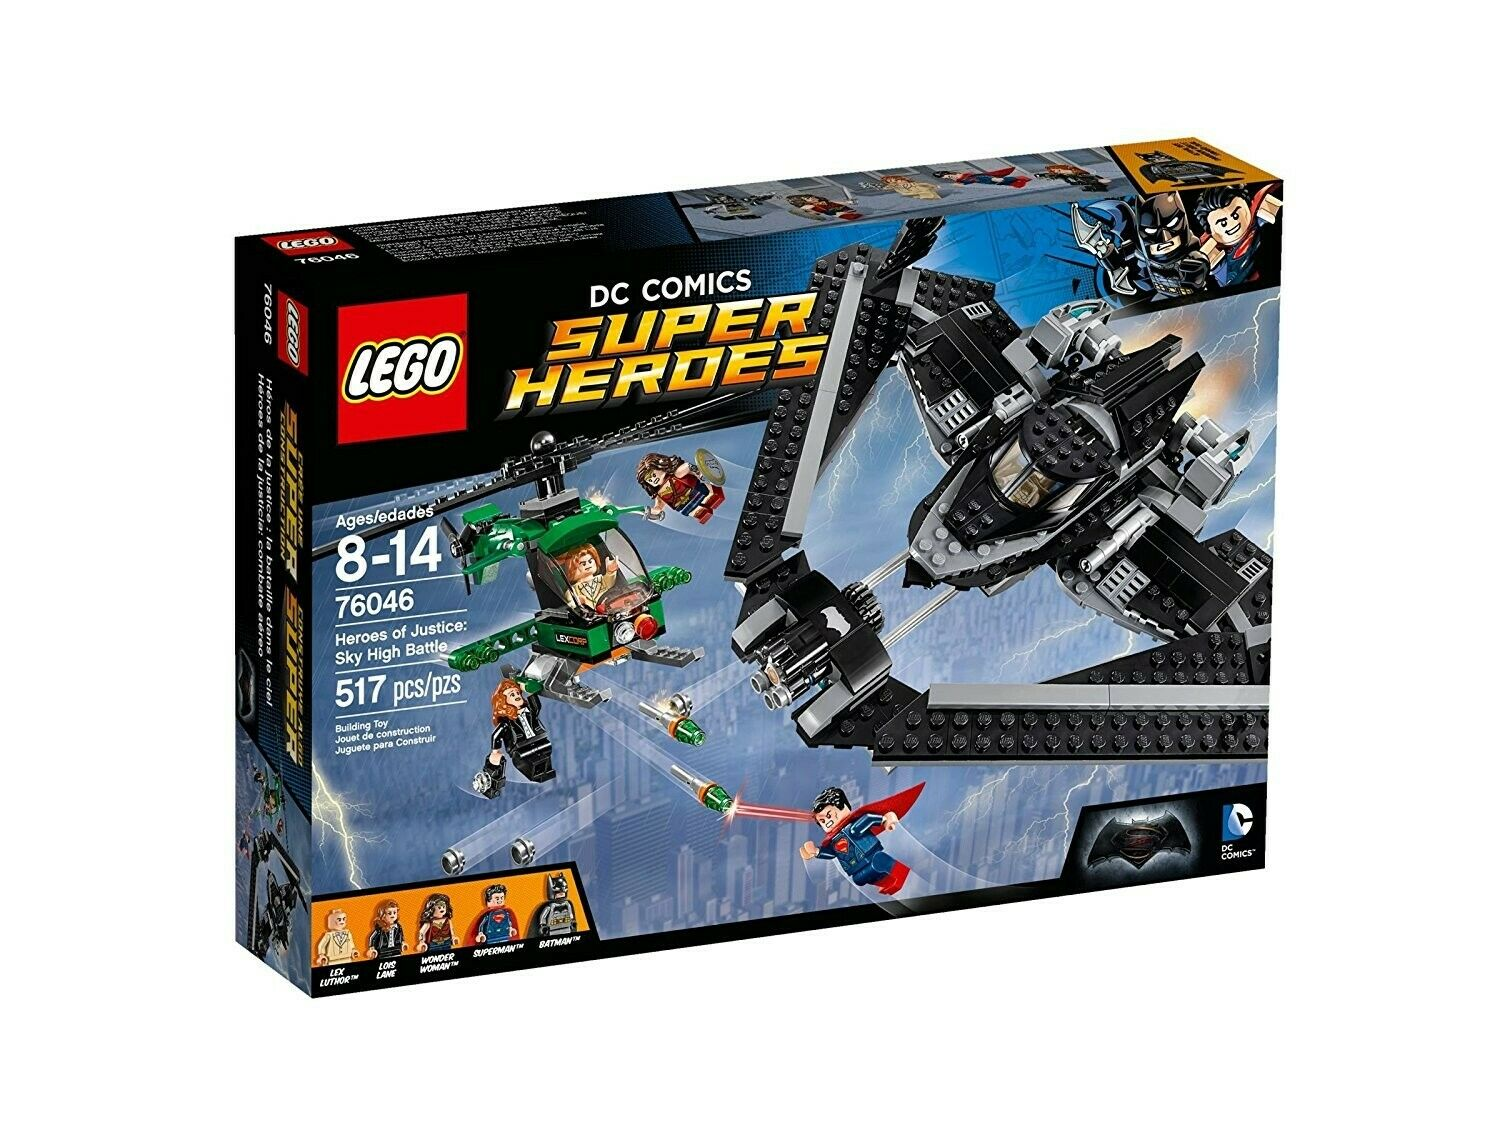 LEGO 76046  Super Heroes DC Comics Batman Superman Wonder Woman Lois Lane